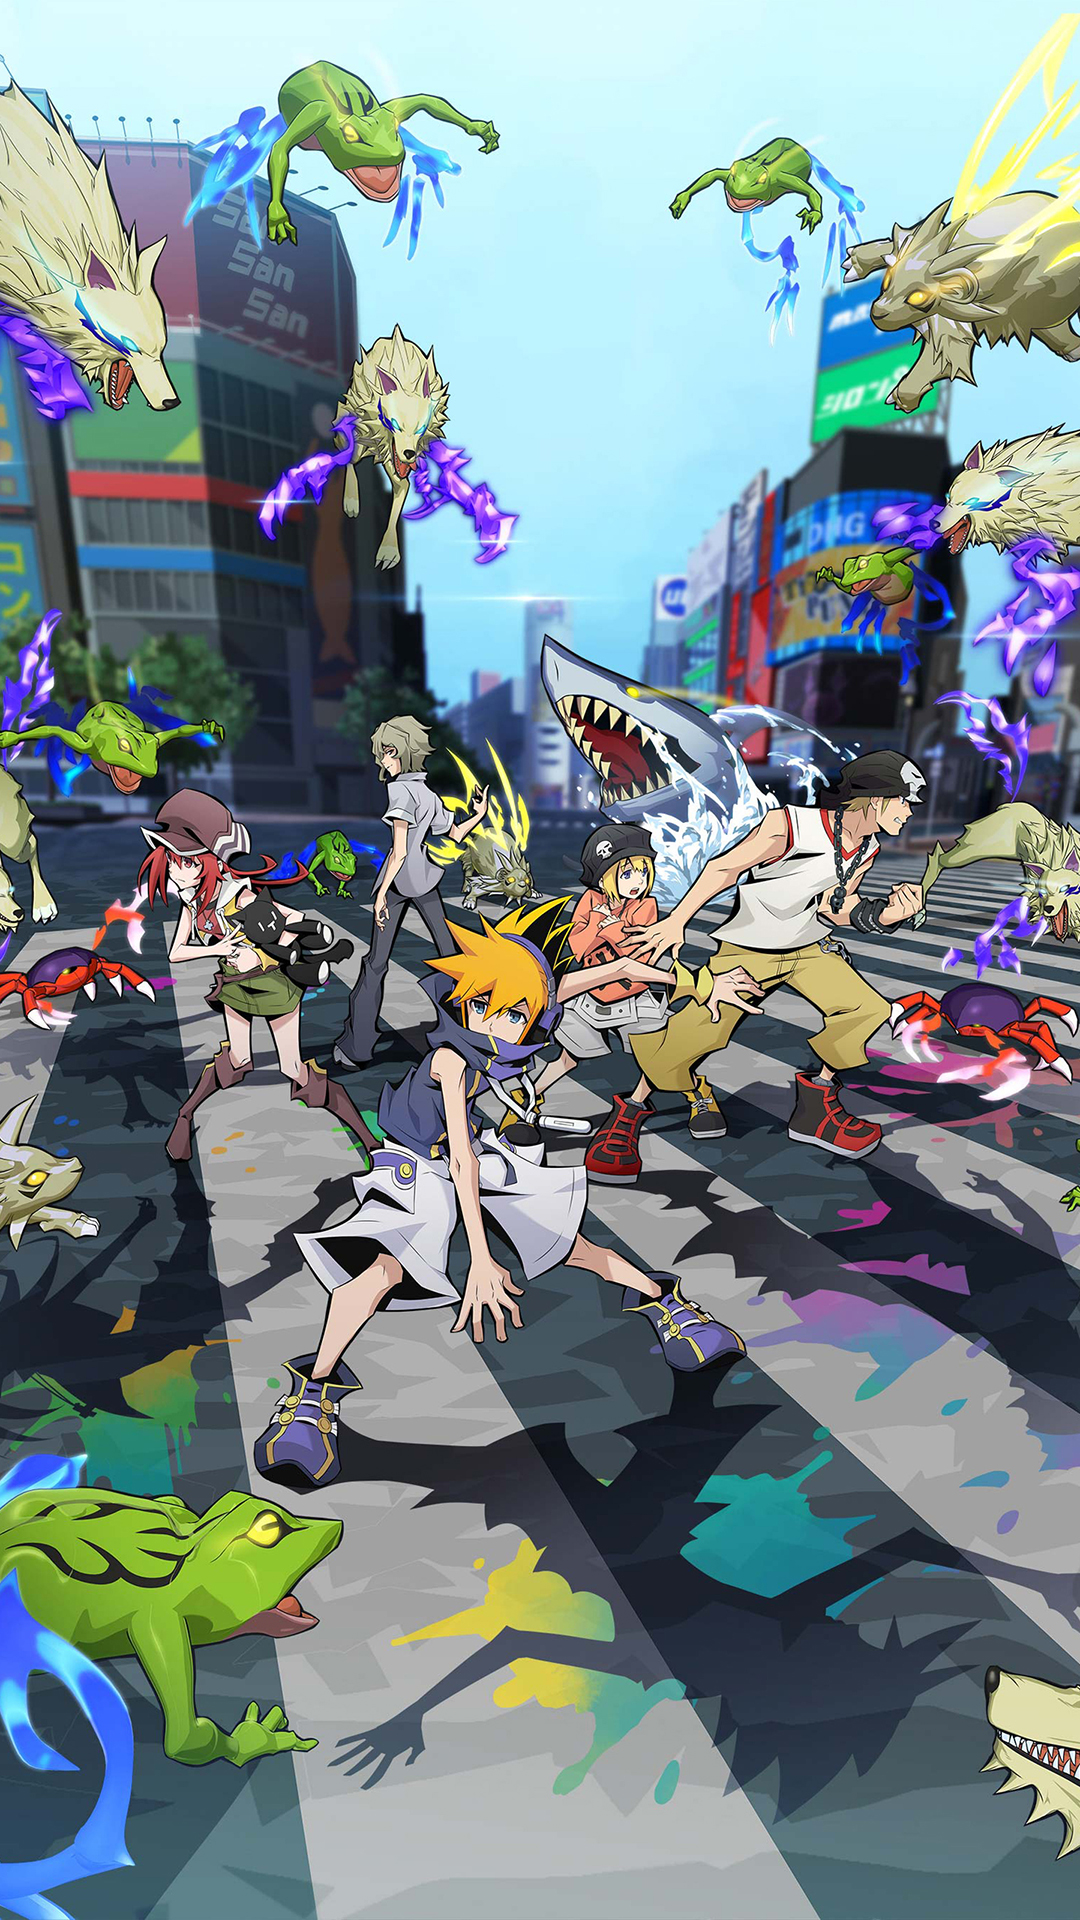 Poster promocional de The World Ends With You